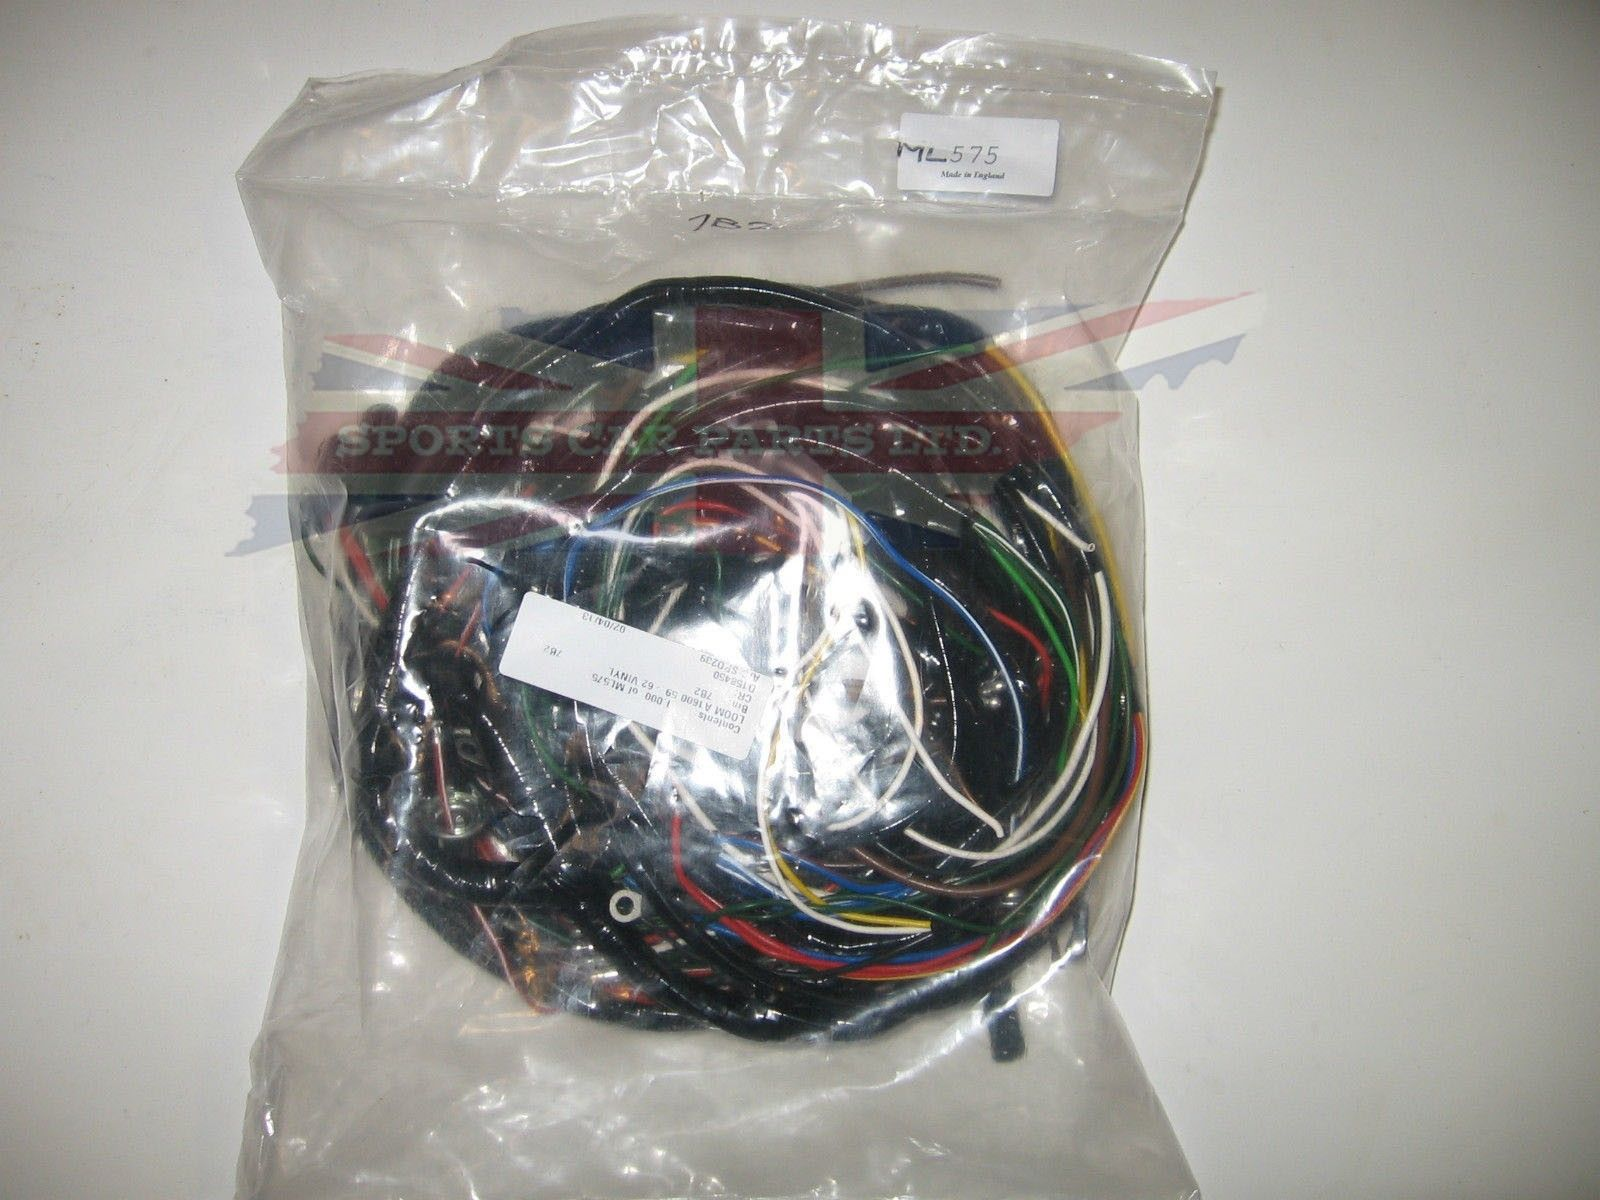 vinyl covered wiring harness for mg mga 1600 1959 1962 rh sportscarpartsltd  com 1979 MGB Wiring Harness Cleaning Up MGB Wiring